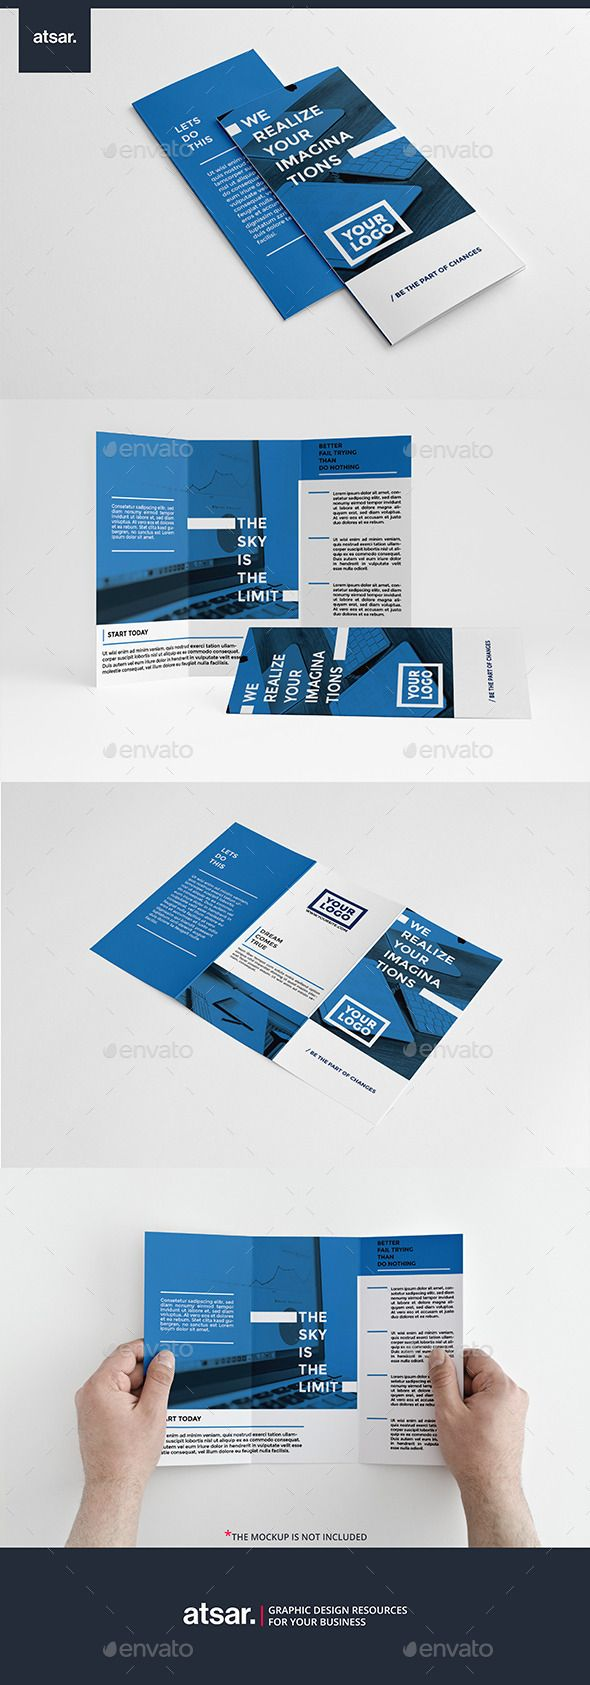 Clean Blue Trifold Template #design Download: http://graphicriver.net/item/clean-blue-trifold/12233957?ref=ksioks